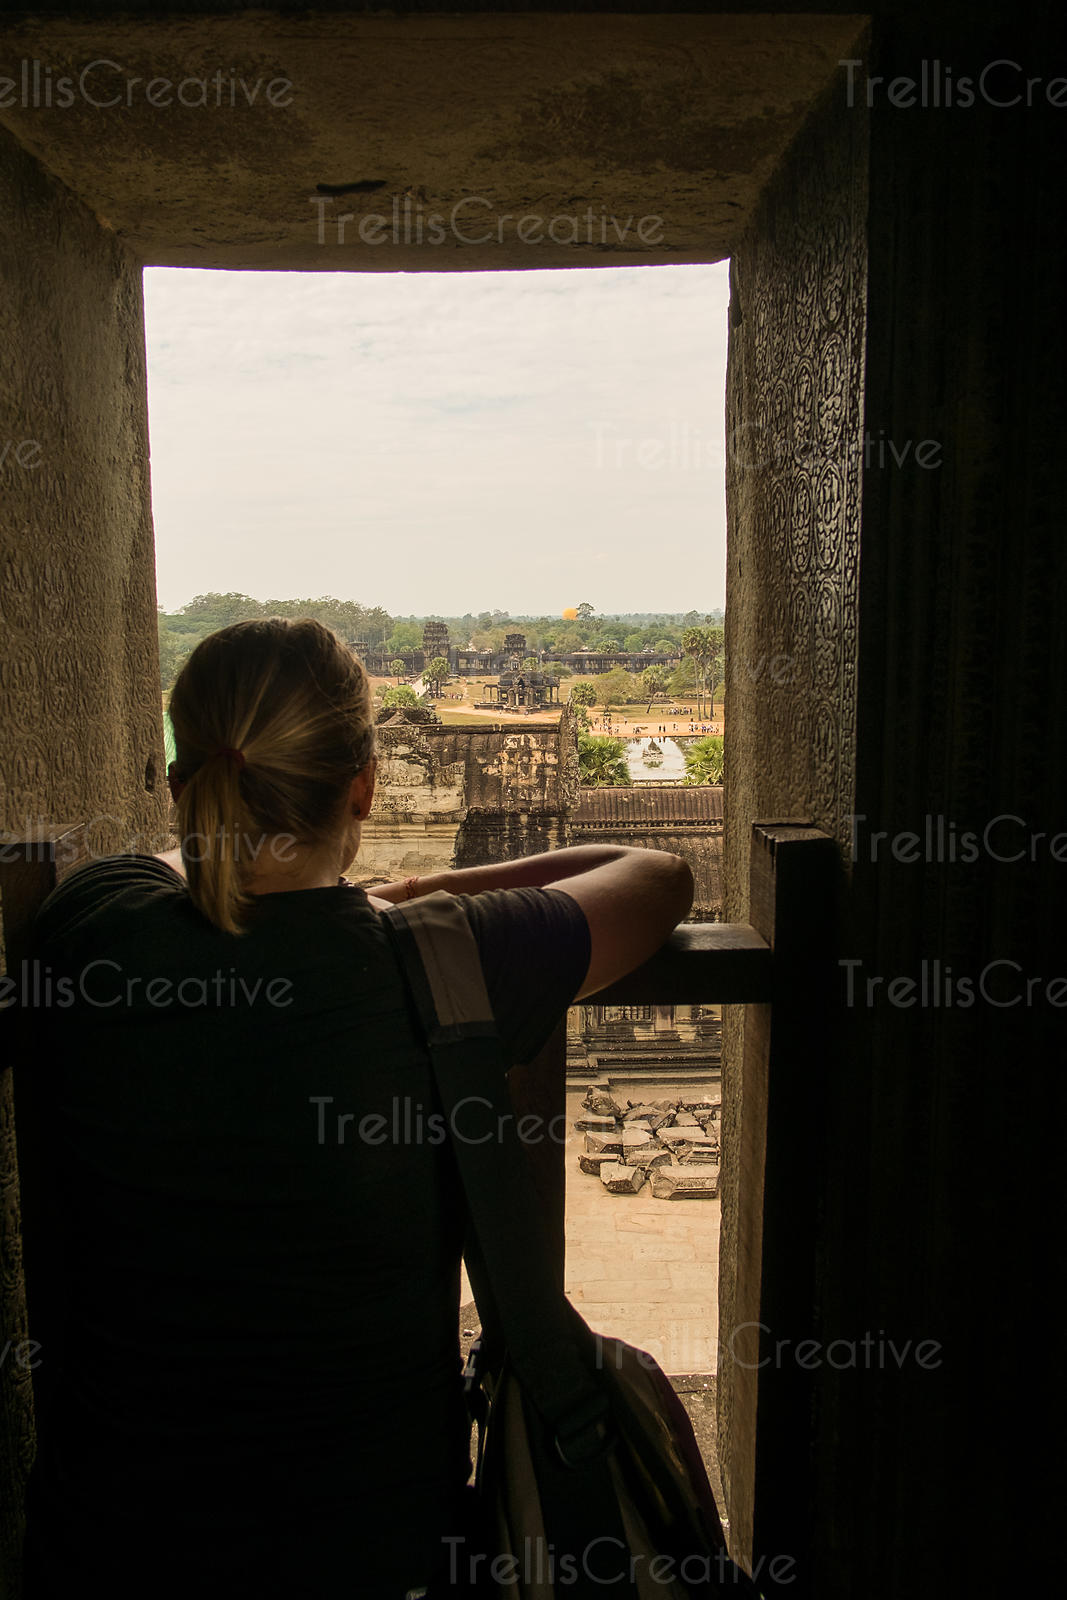 Female tourist looking out at the view of Angkor Wat from temple window